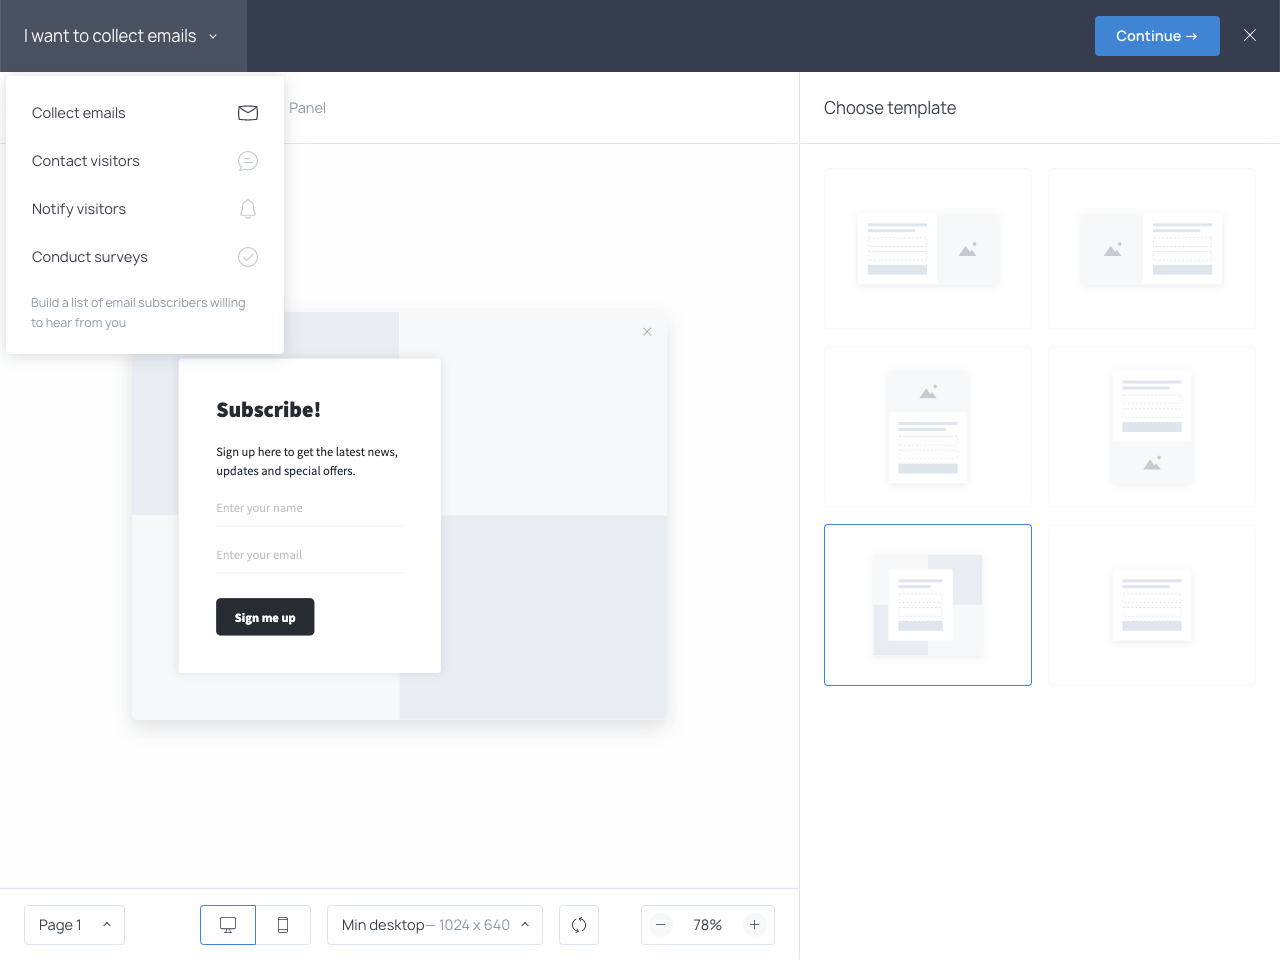 Create a coming soon page with an email form that converts